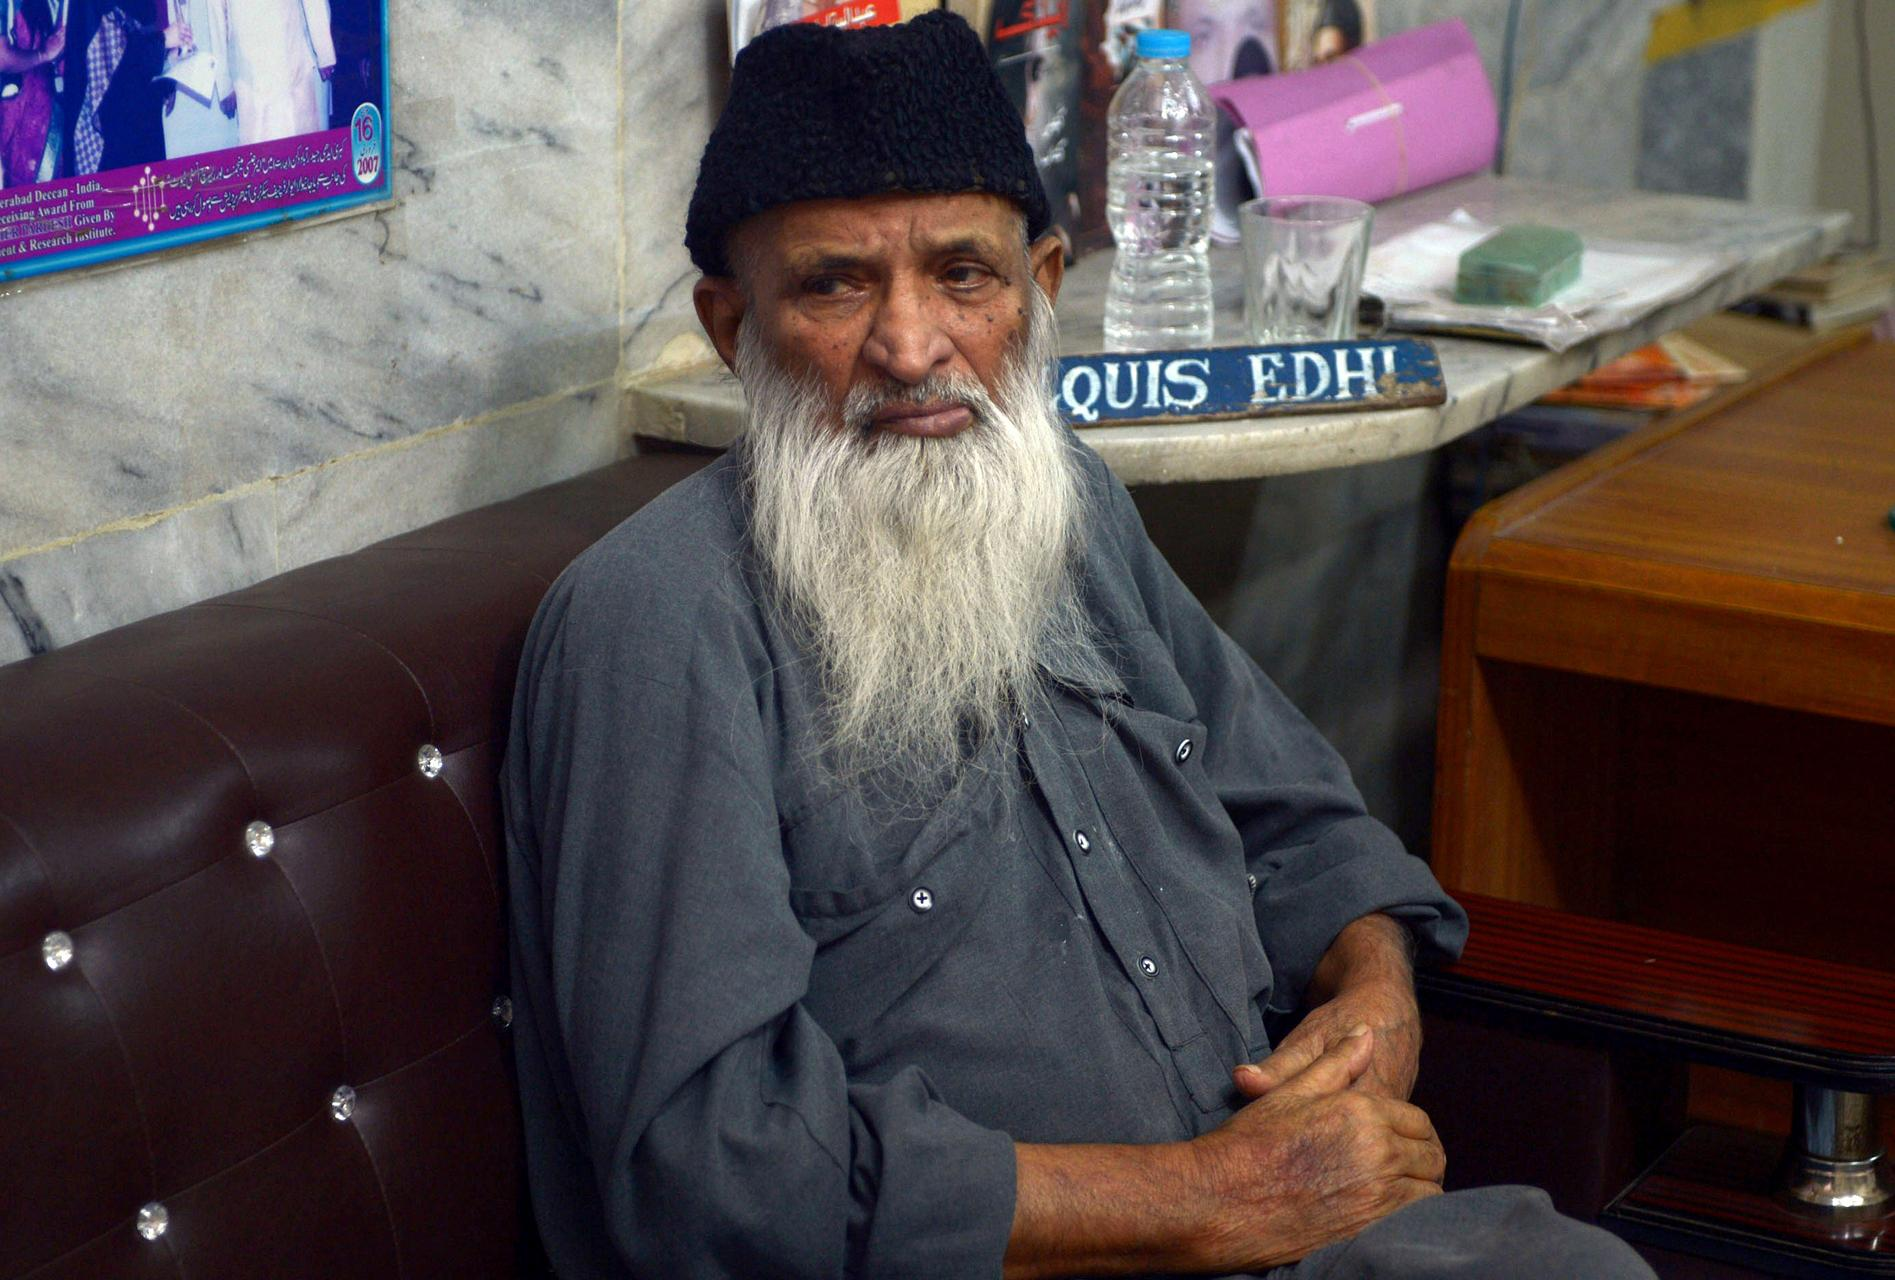 abdul sattar edhi report Armed men point pistol at abdul sattar edhi to get keys of lockers for gold and cash.